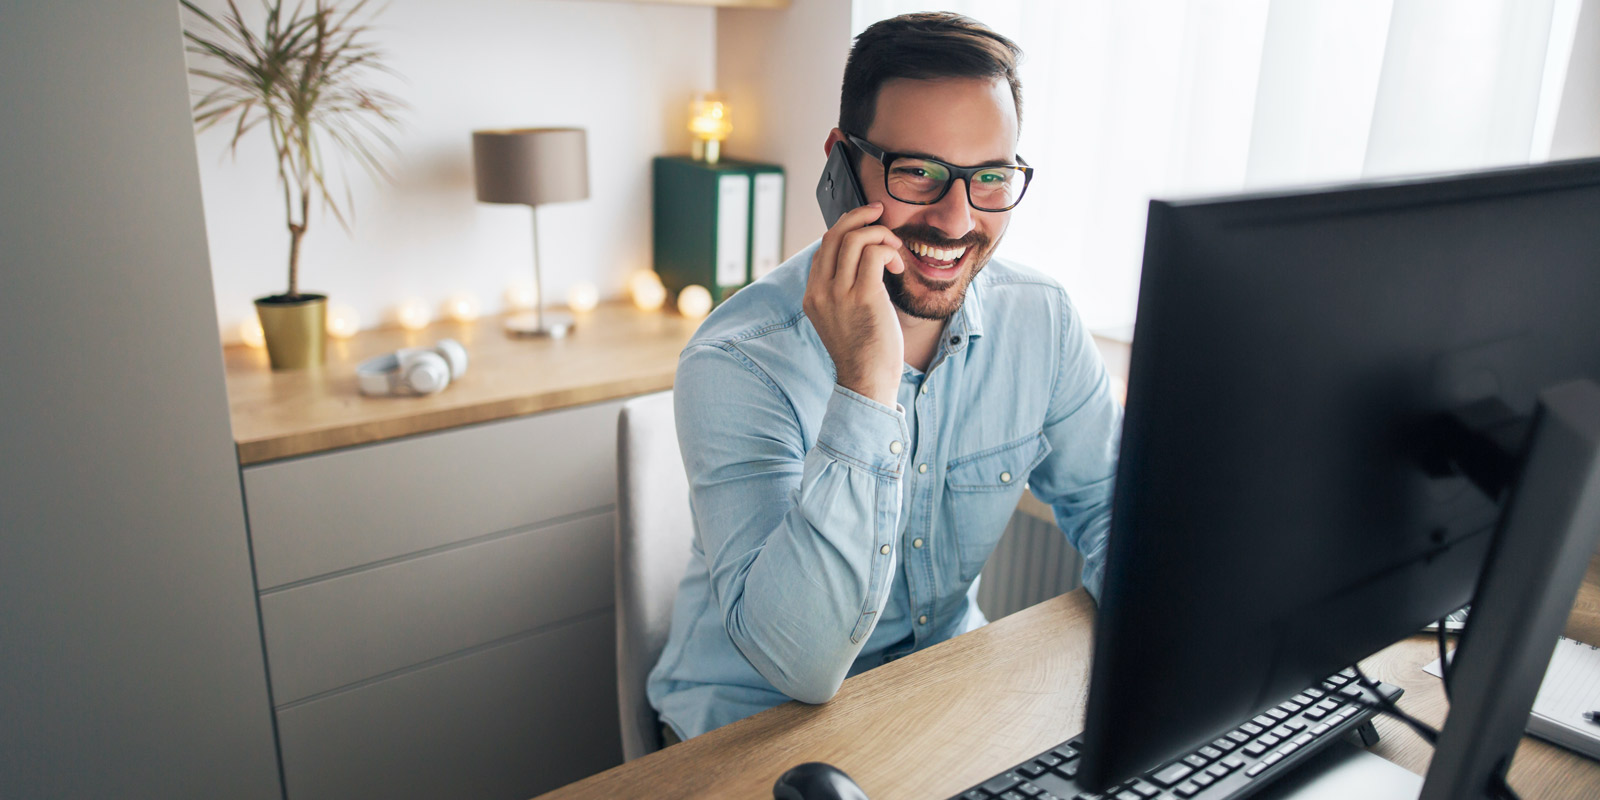 Man on phone working from home